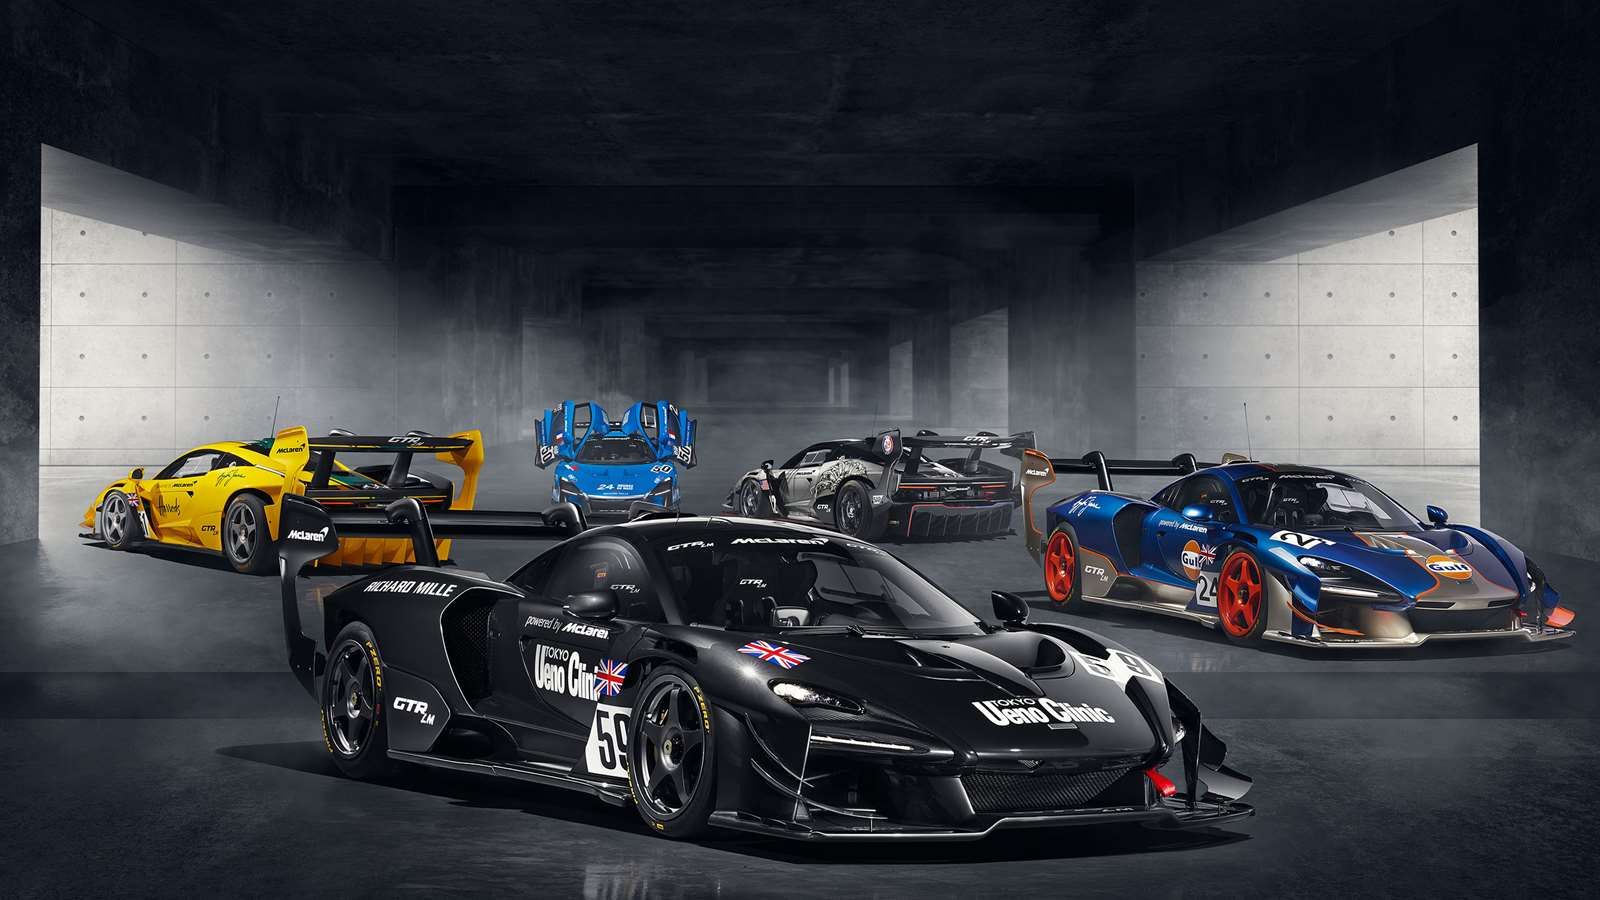 The Senna Gtr Lm Is A Tribute To The Le Mans Conquering F1 Gtr Grr